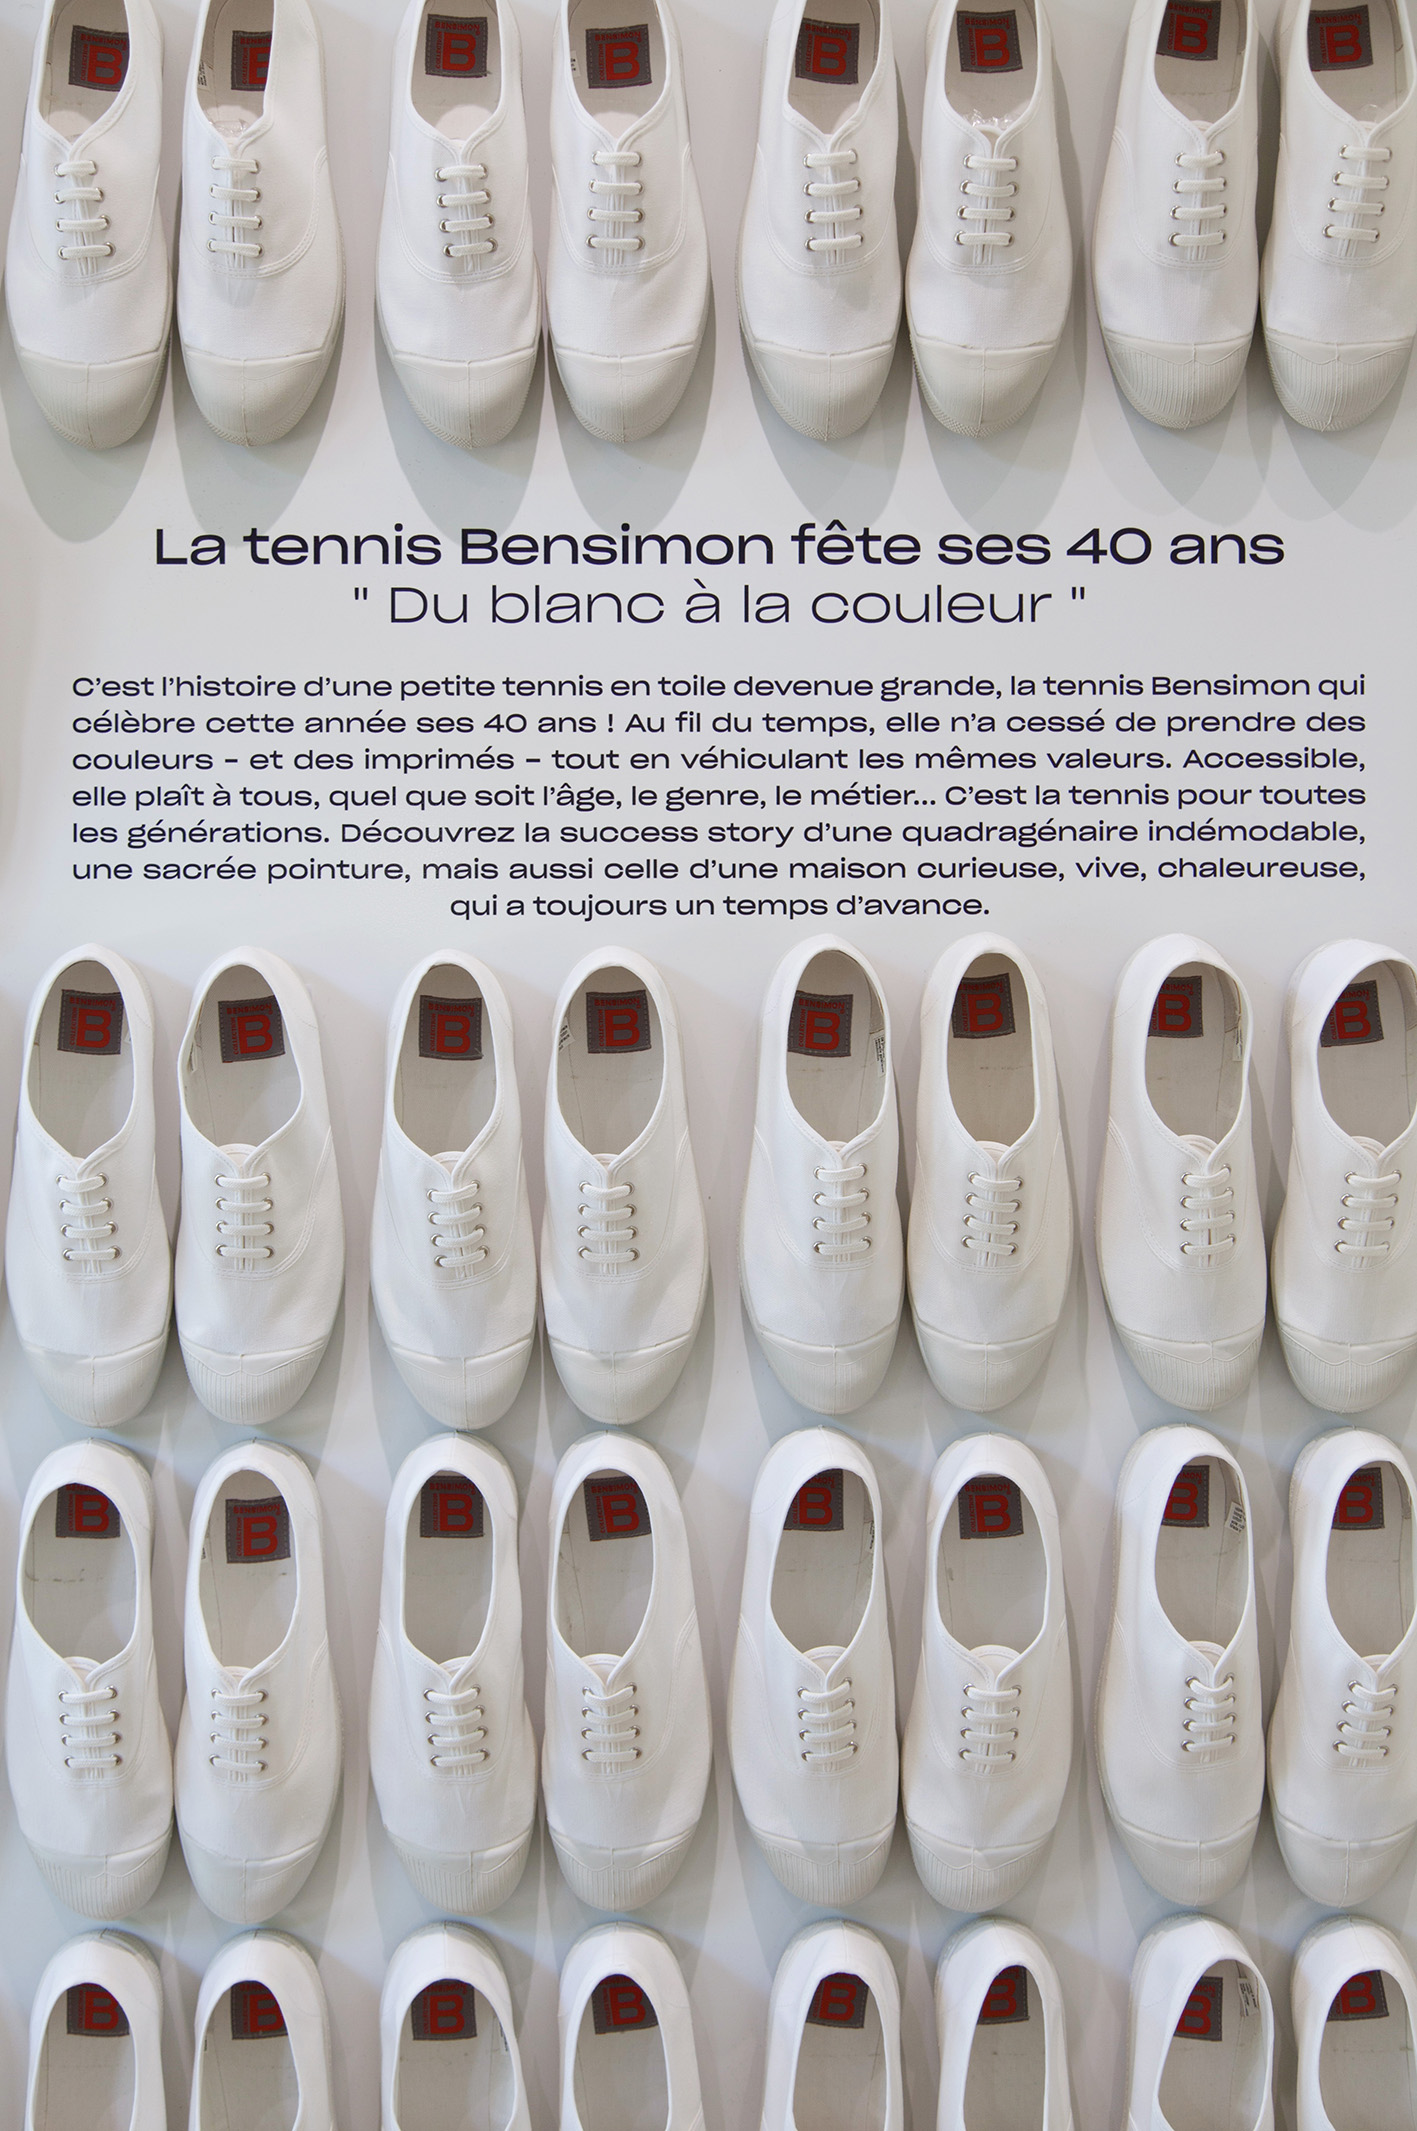 tennis Bensimon-Vernissage-40ans